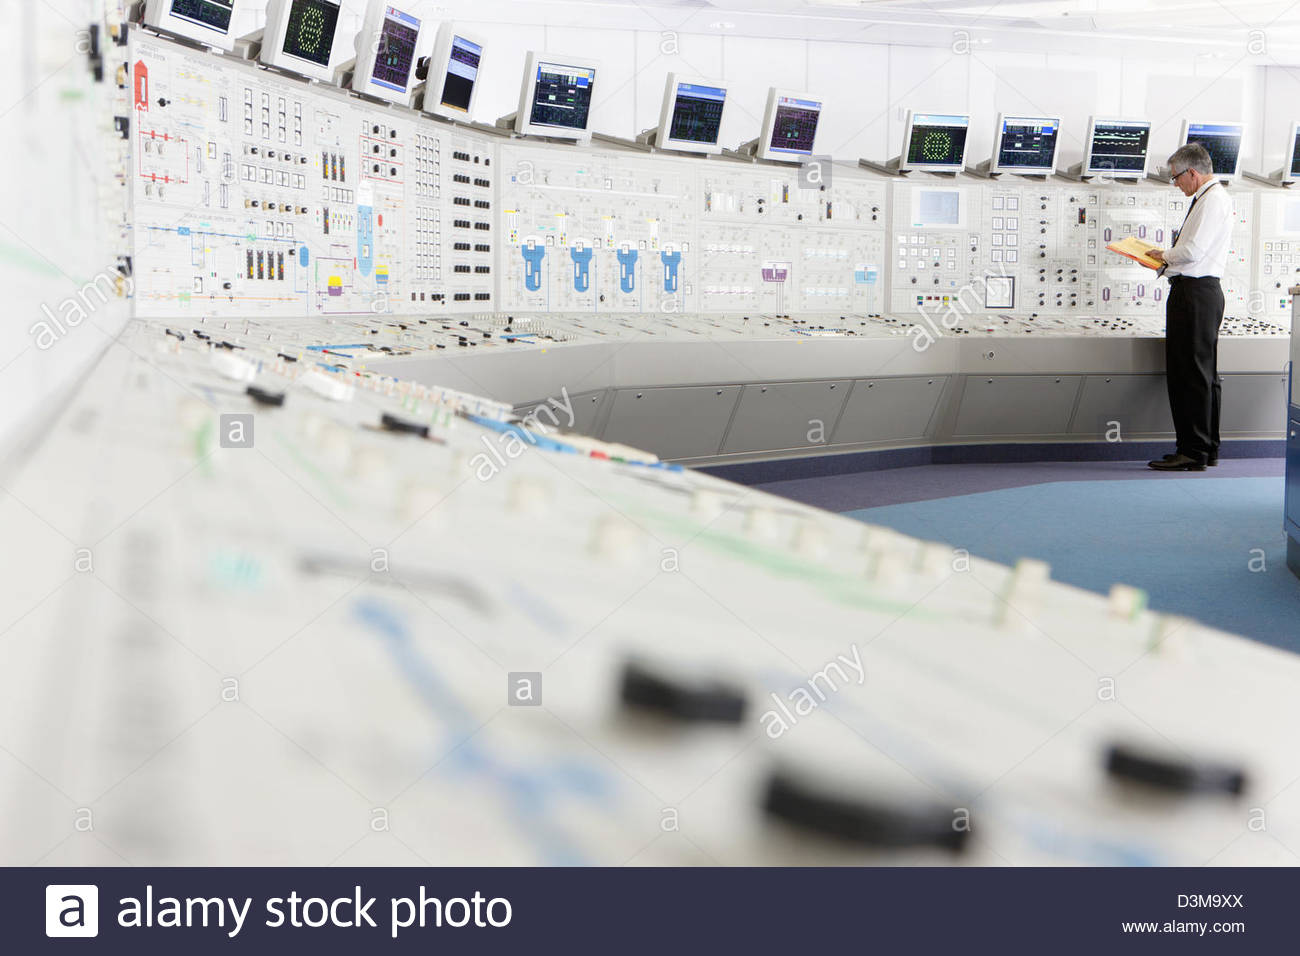 Engineer working in control room of nuclear power station - Stock Image